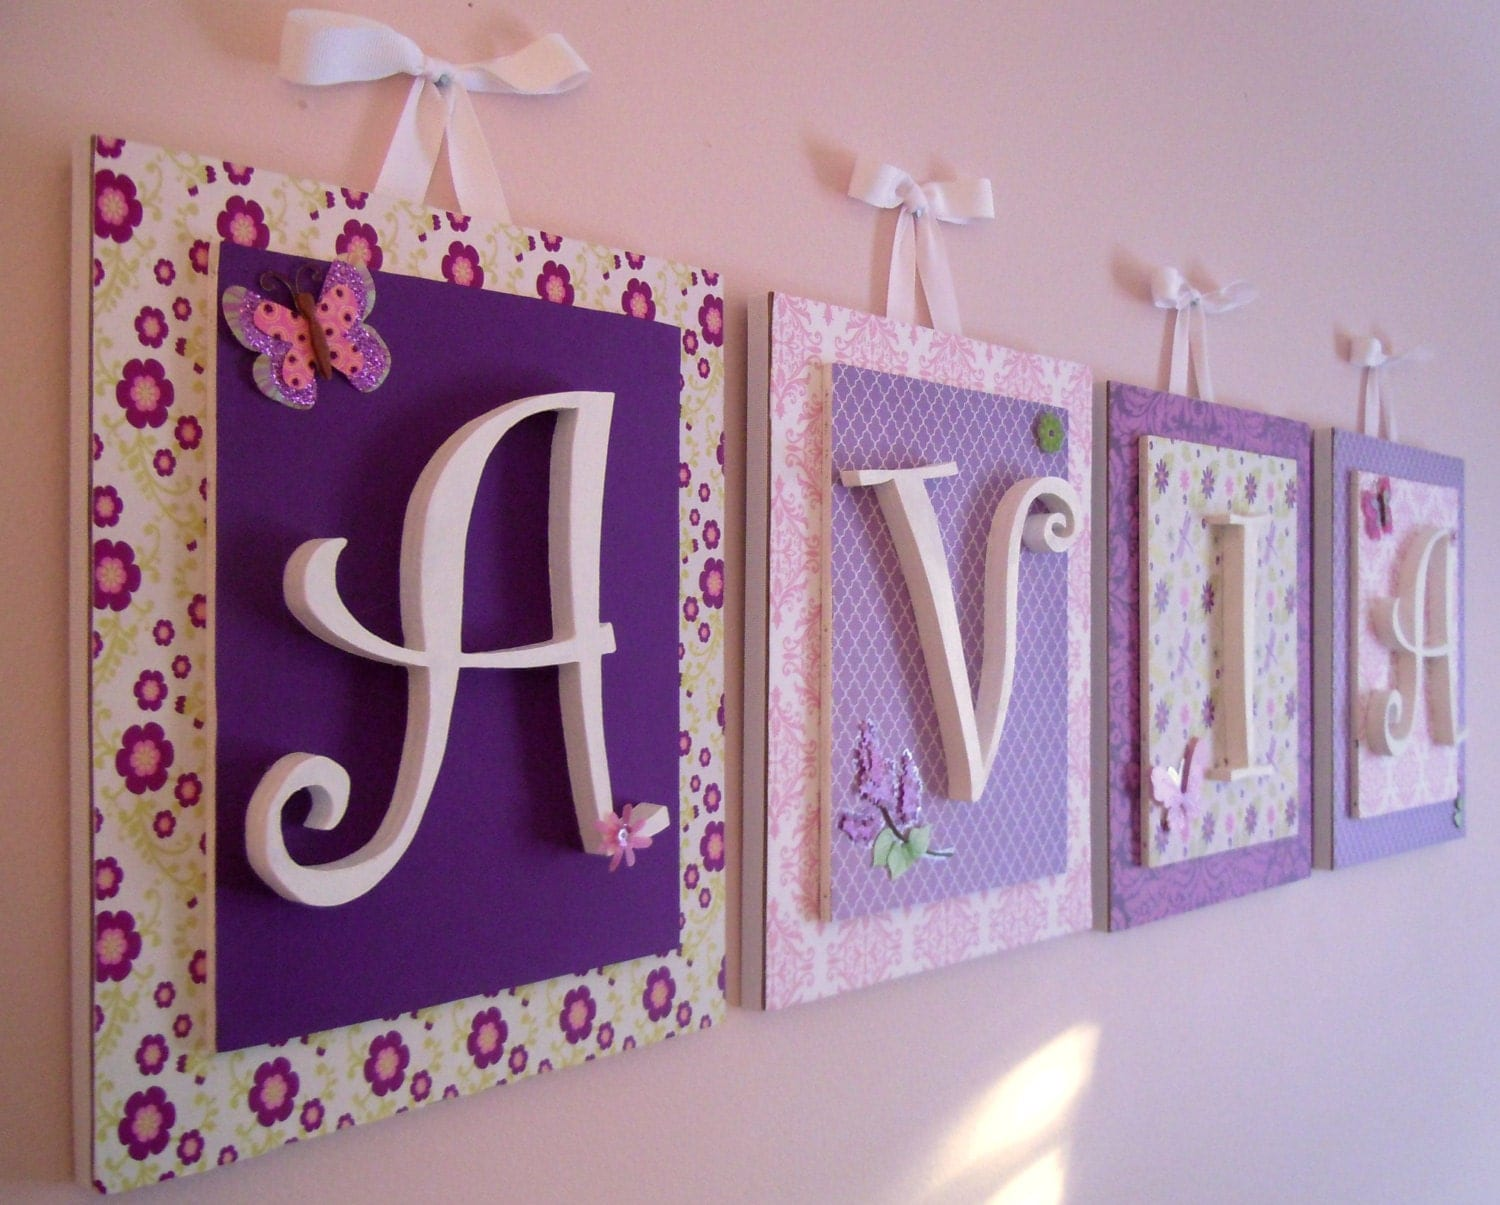 How To Decorate Wooden Letters For Nursery: Nursery Letters Lambs And Ivy Butter Fly Lane Purple